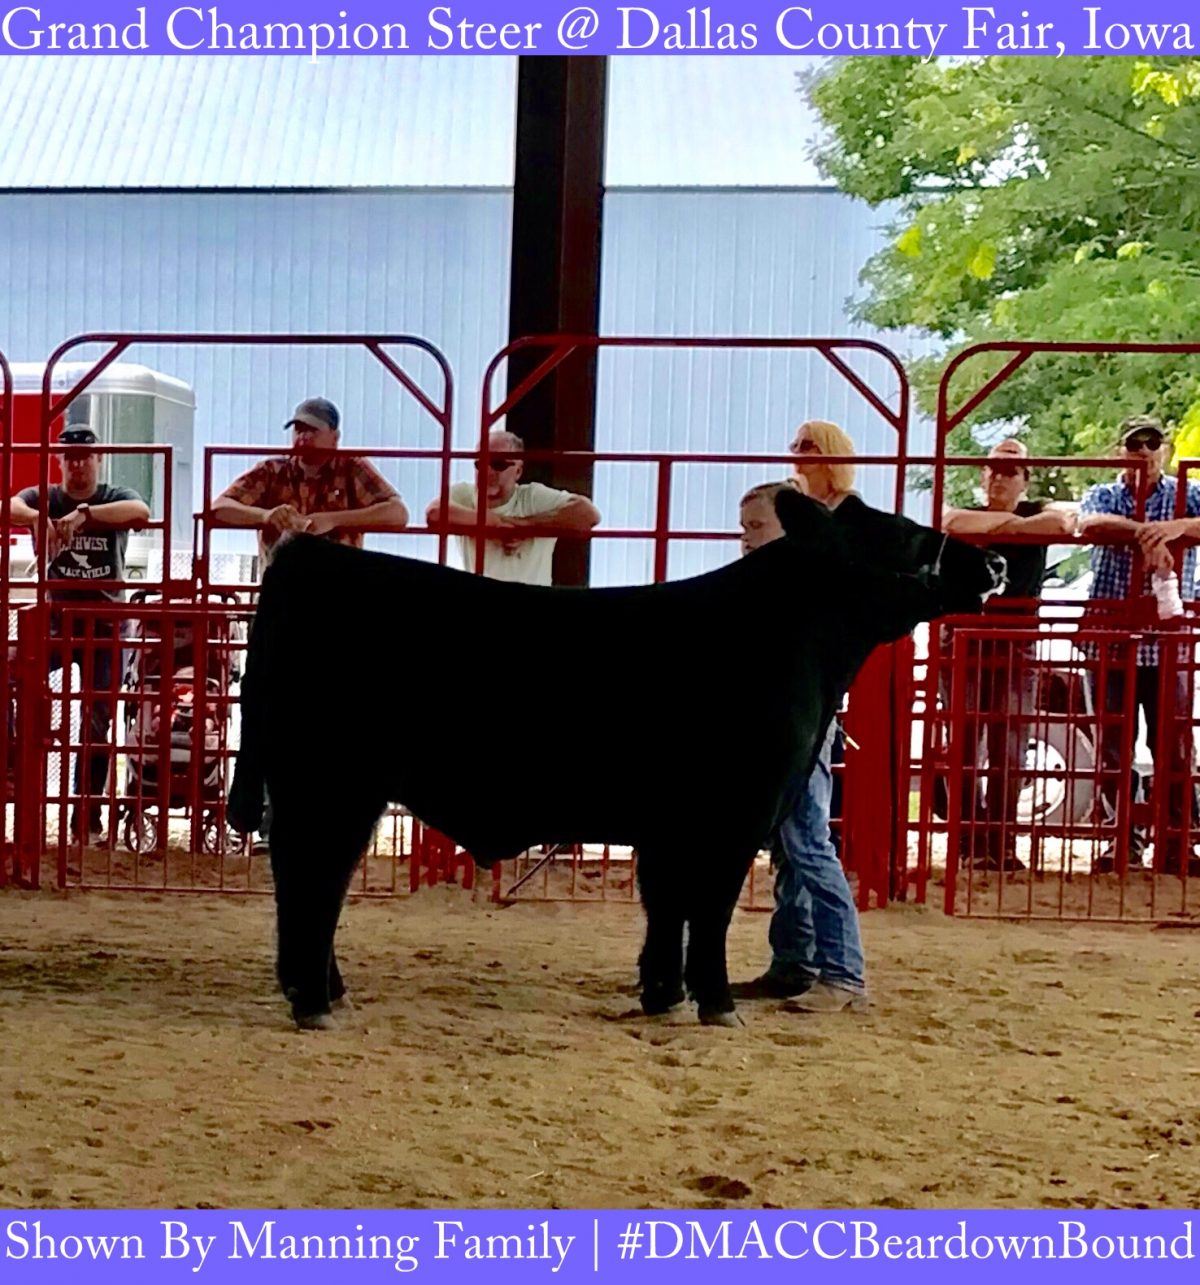 Exciting junior show day in Adel, Iowa at Dallas County ...